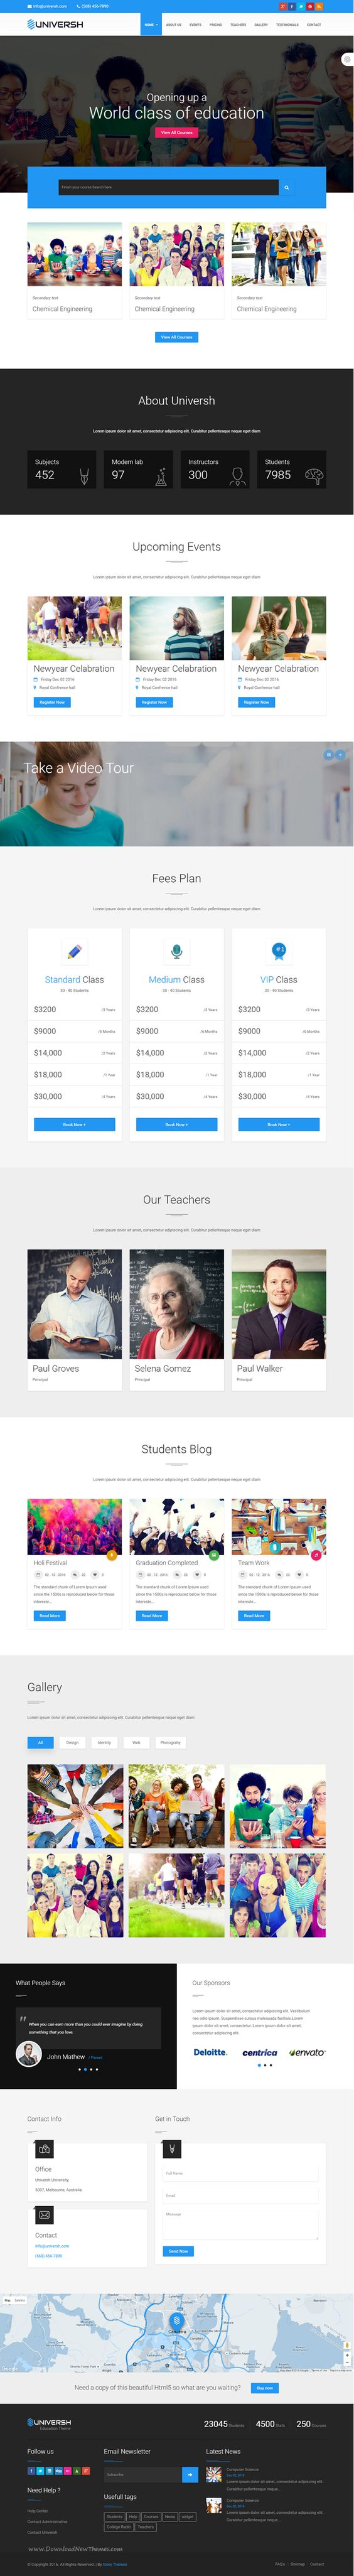 Universh - Material Education, Events, News, Learning Center & Kid #School Multipurpose Bootstrap HTML Template #onepage #webdesign